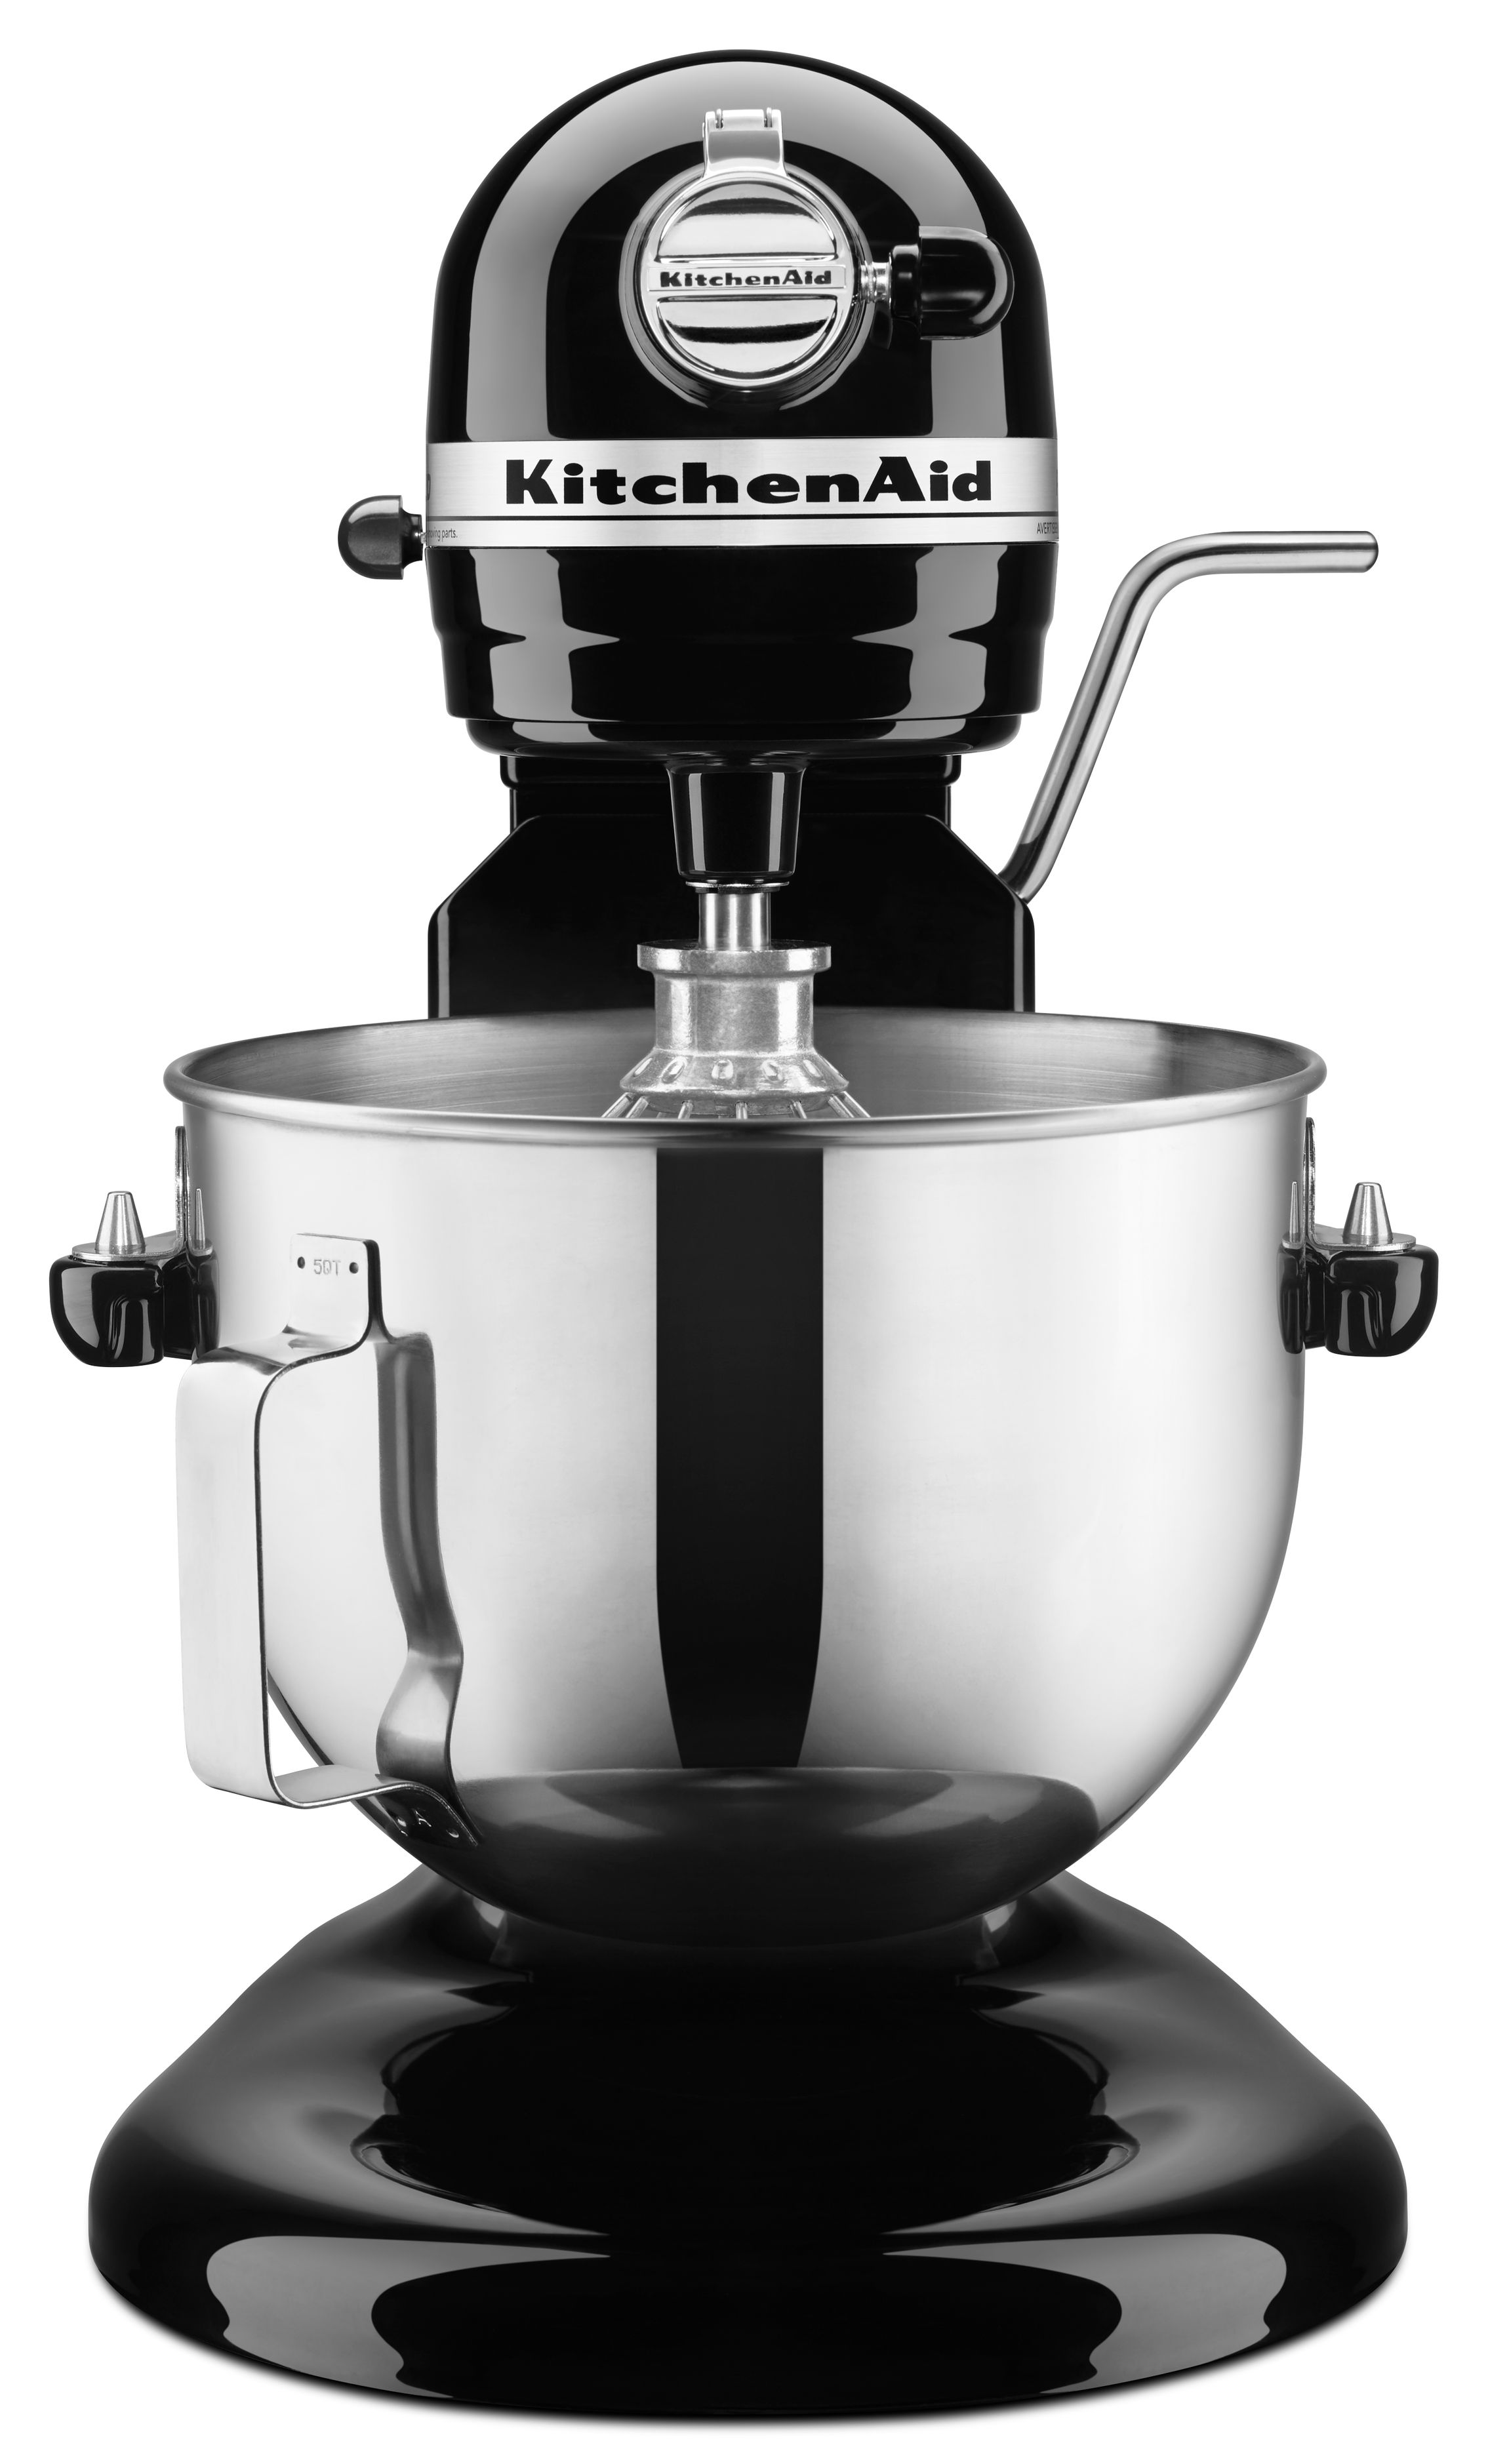 KitchenAid-Refurbished-Professional-HD-Series-Bowl-Lift-Stand-Mixer-RKG25H0X thumbnail 17